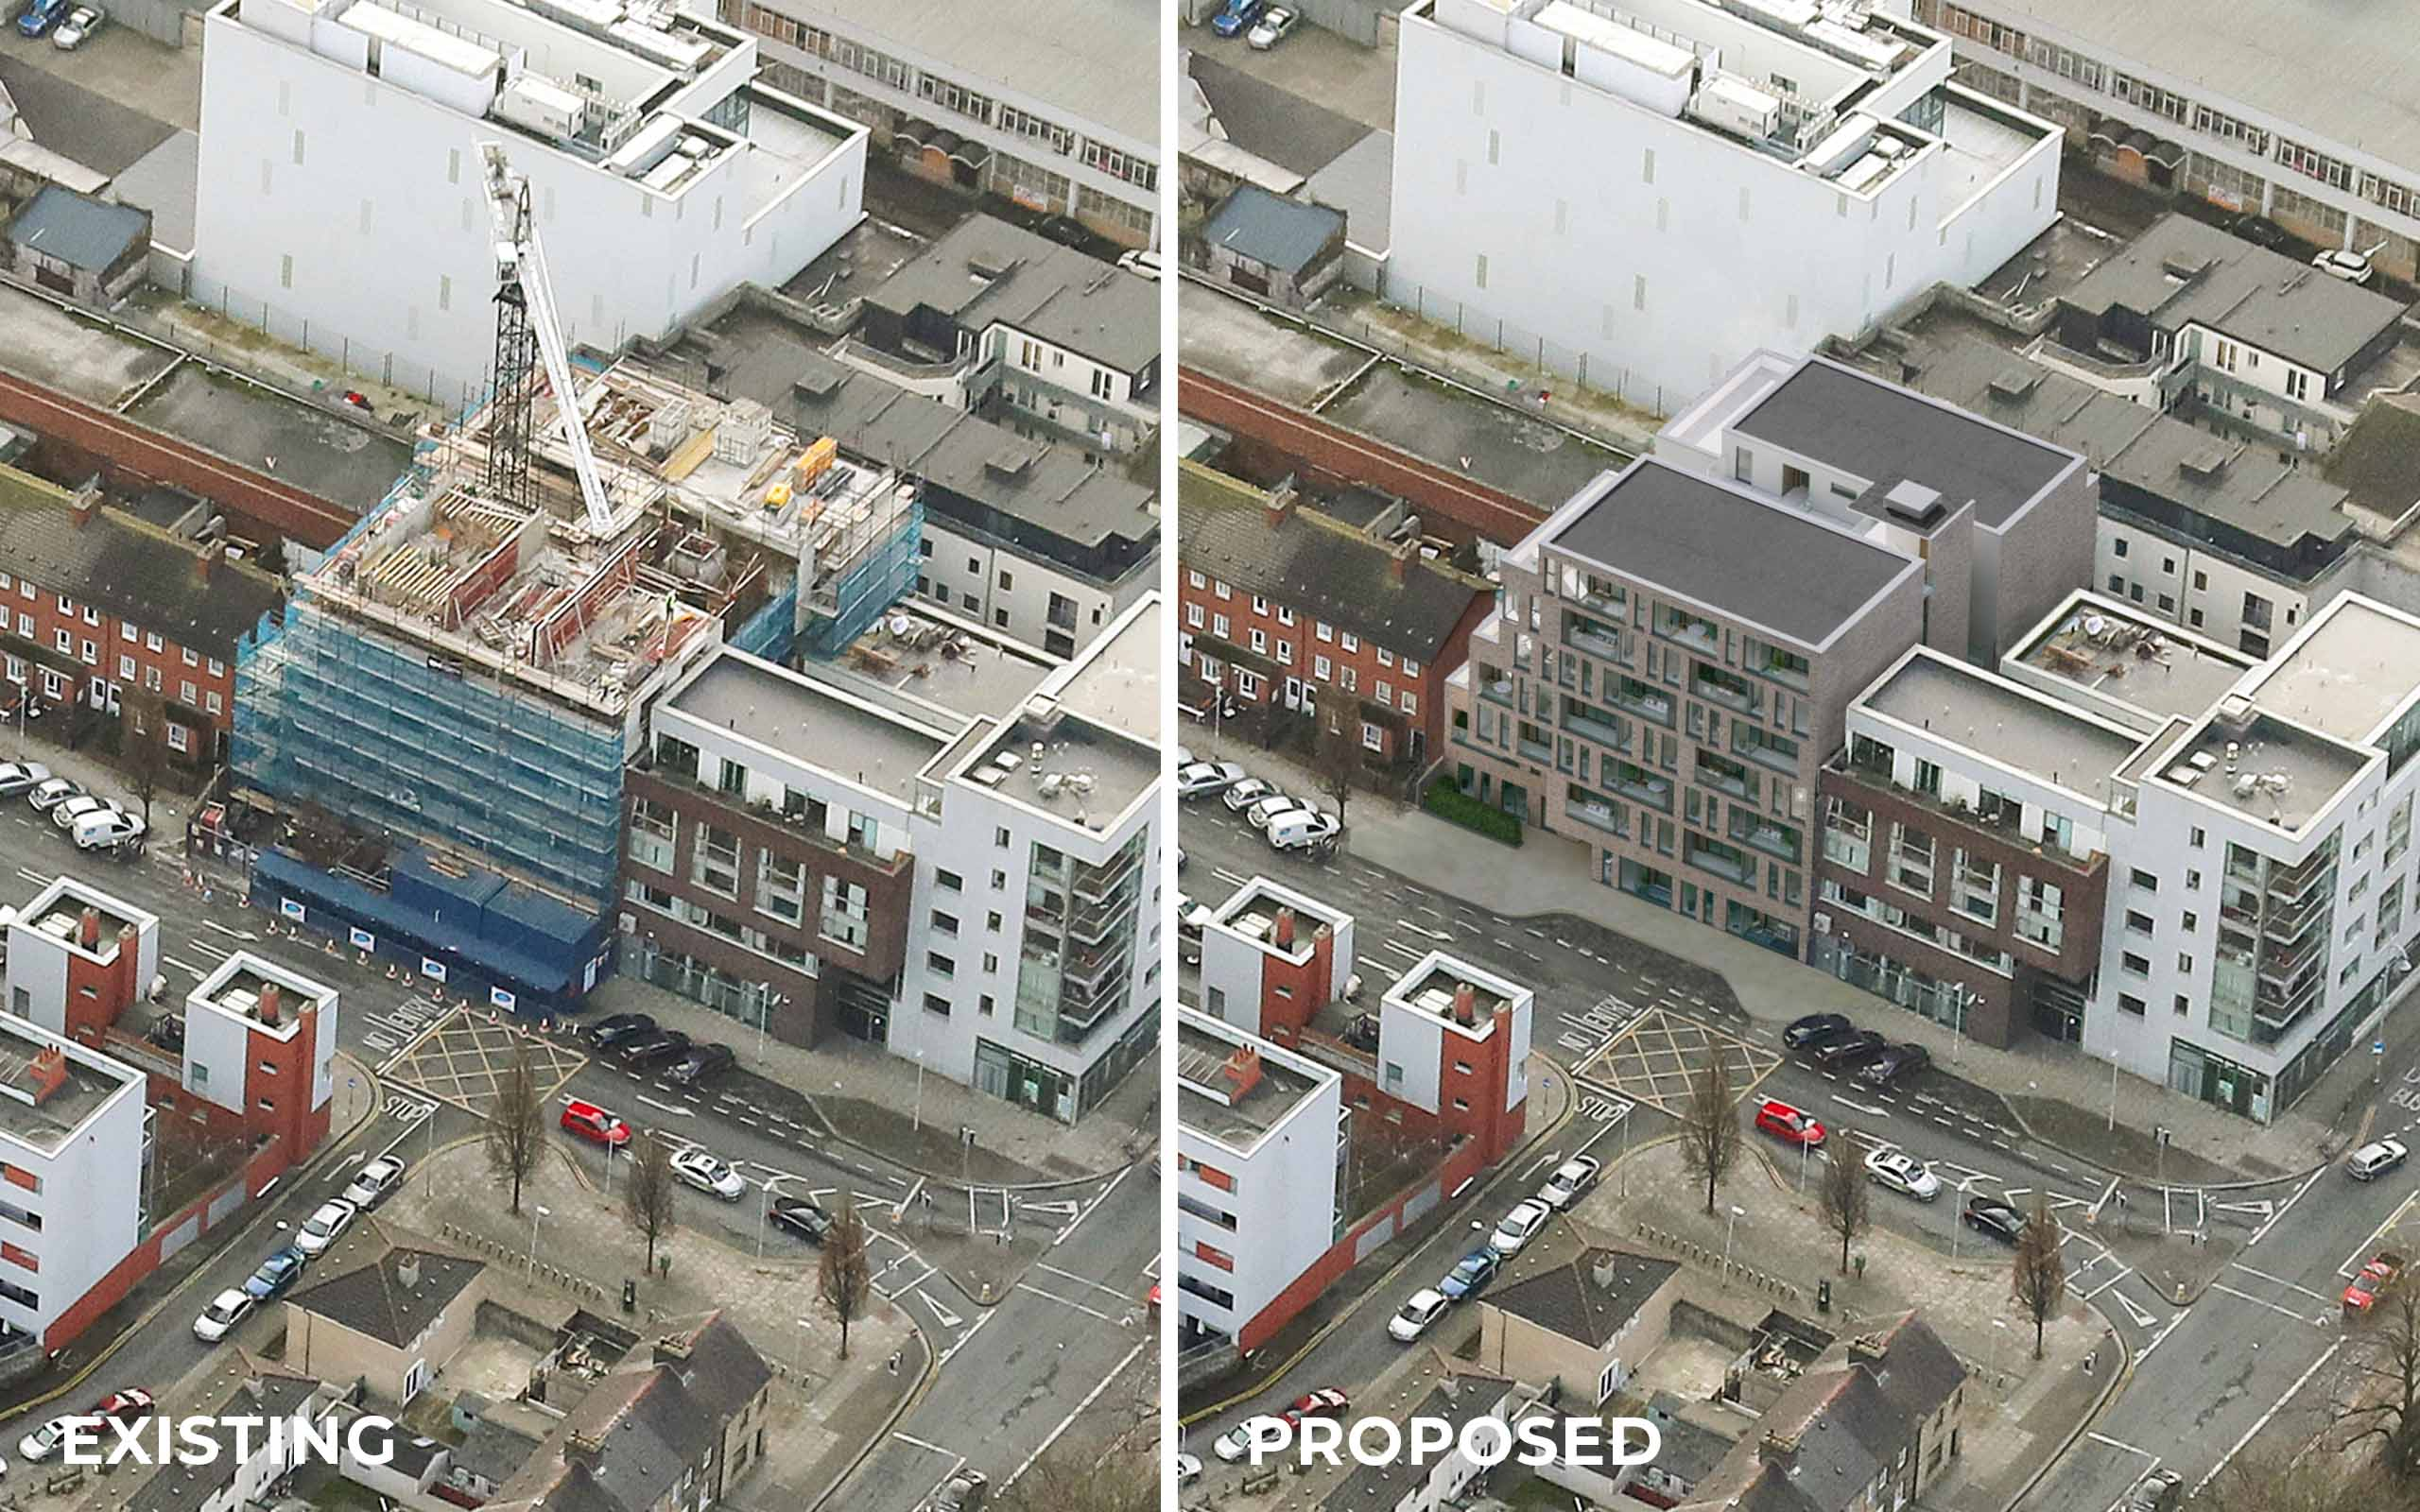 Aerial photomontage of 19/20 Blackhall Street in Smithfield